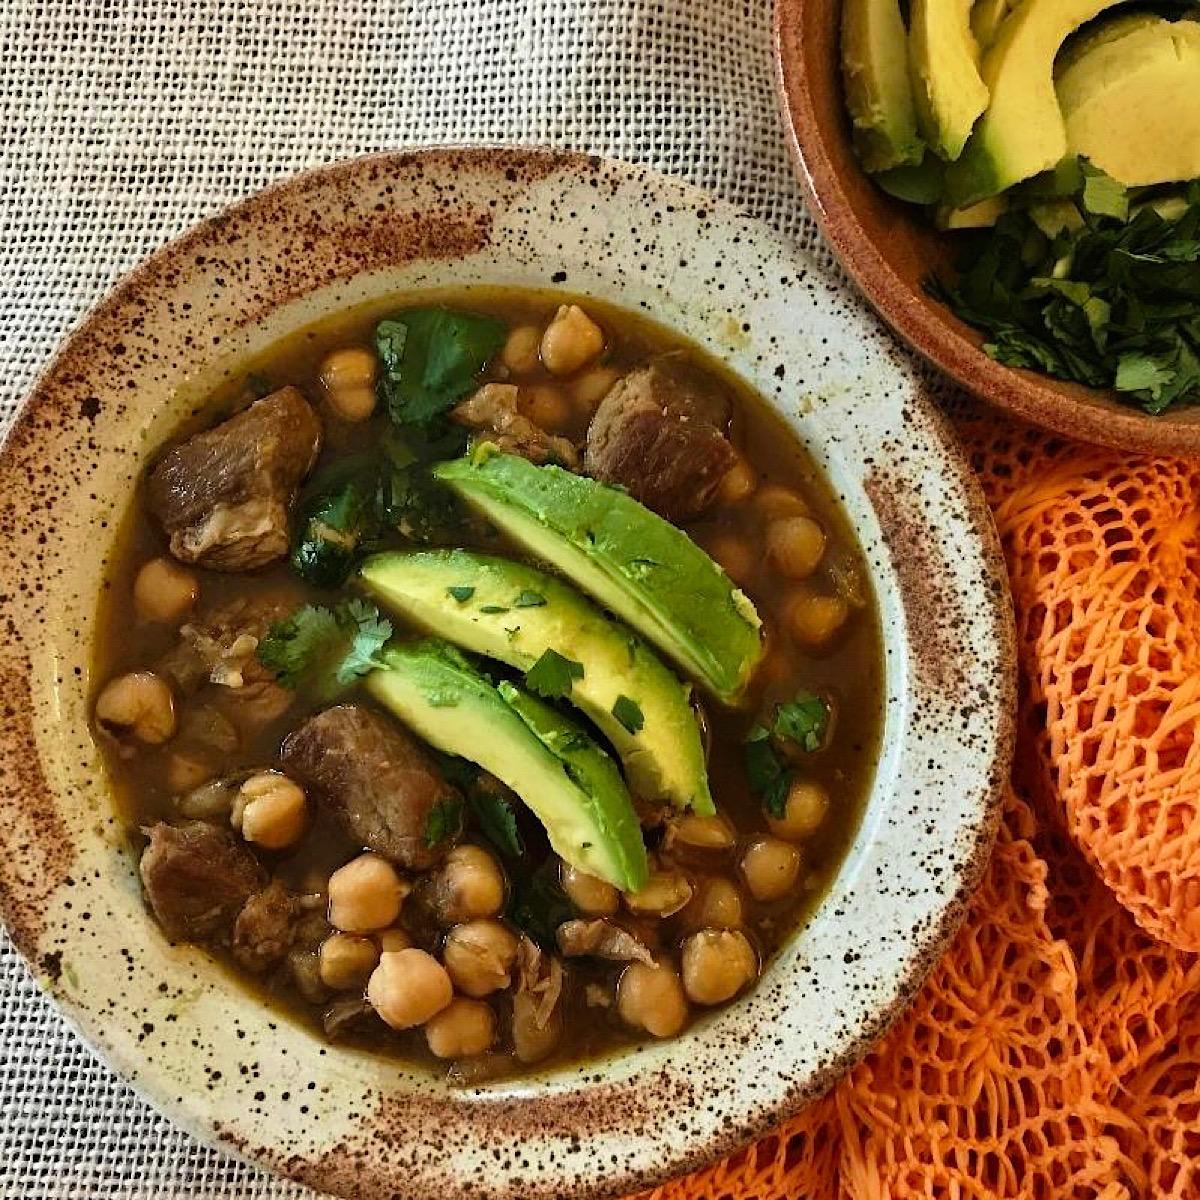 Bowl of pork posole with garbanzo beans and sliced avocado garnish